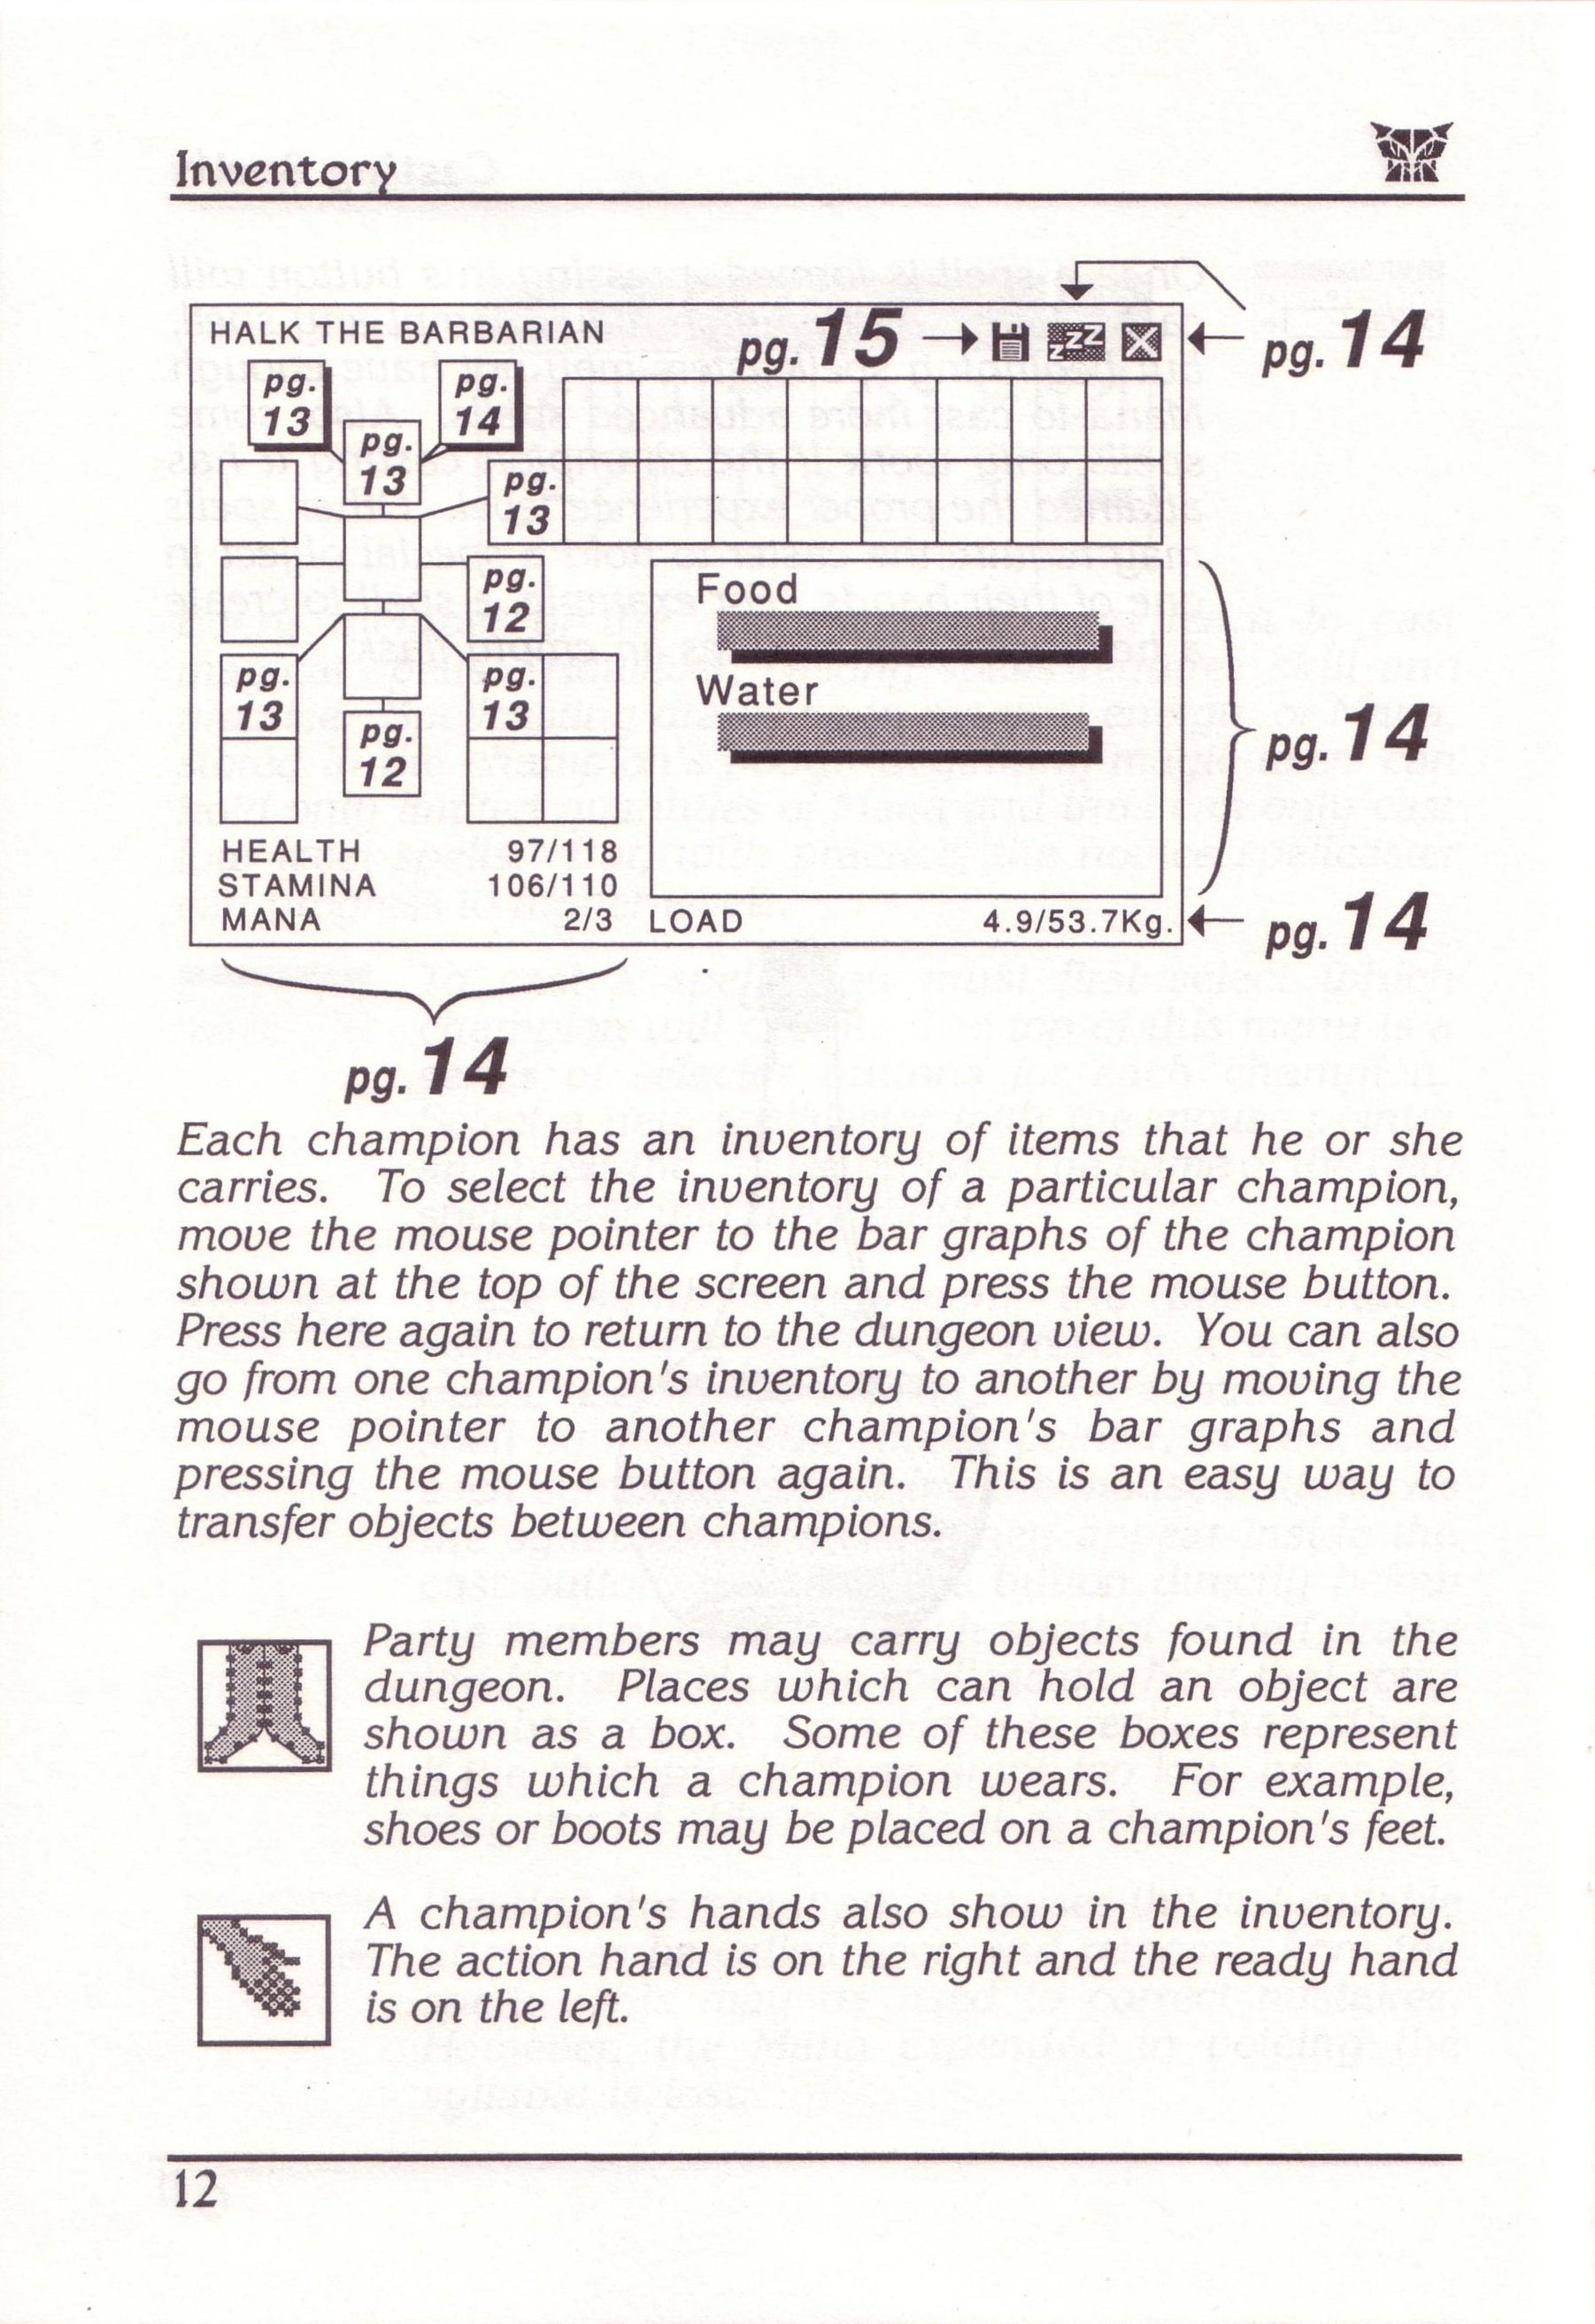 Dungeon Master for PC with FTL Sound Adapter (US Release) - Manual Page 36